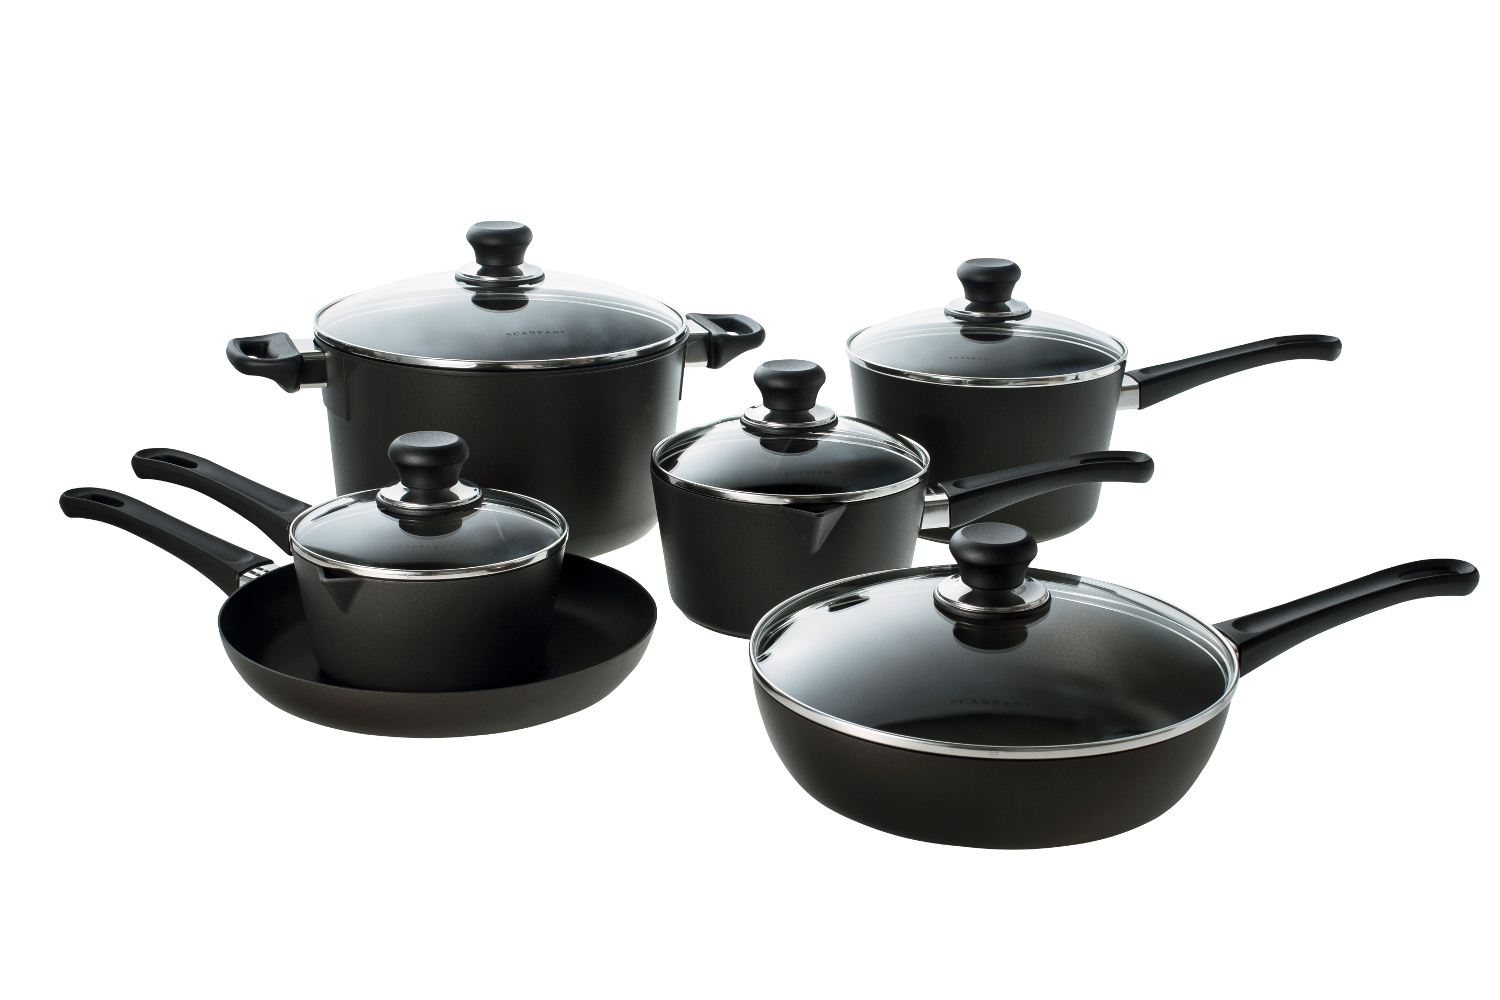 Scanpan Classic 11 Piece Nonstick Deluxe Chef's Cookware Set